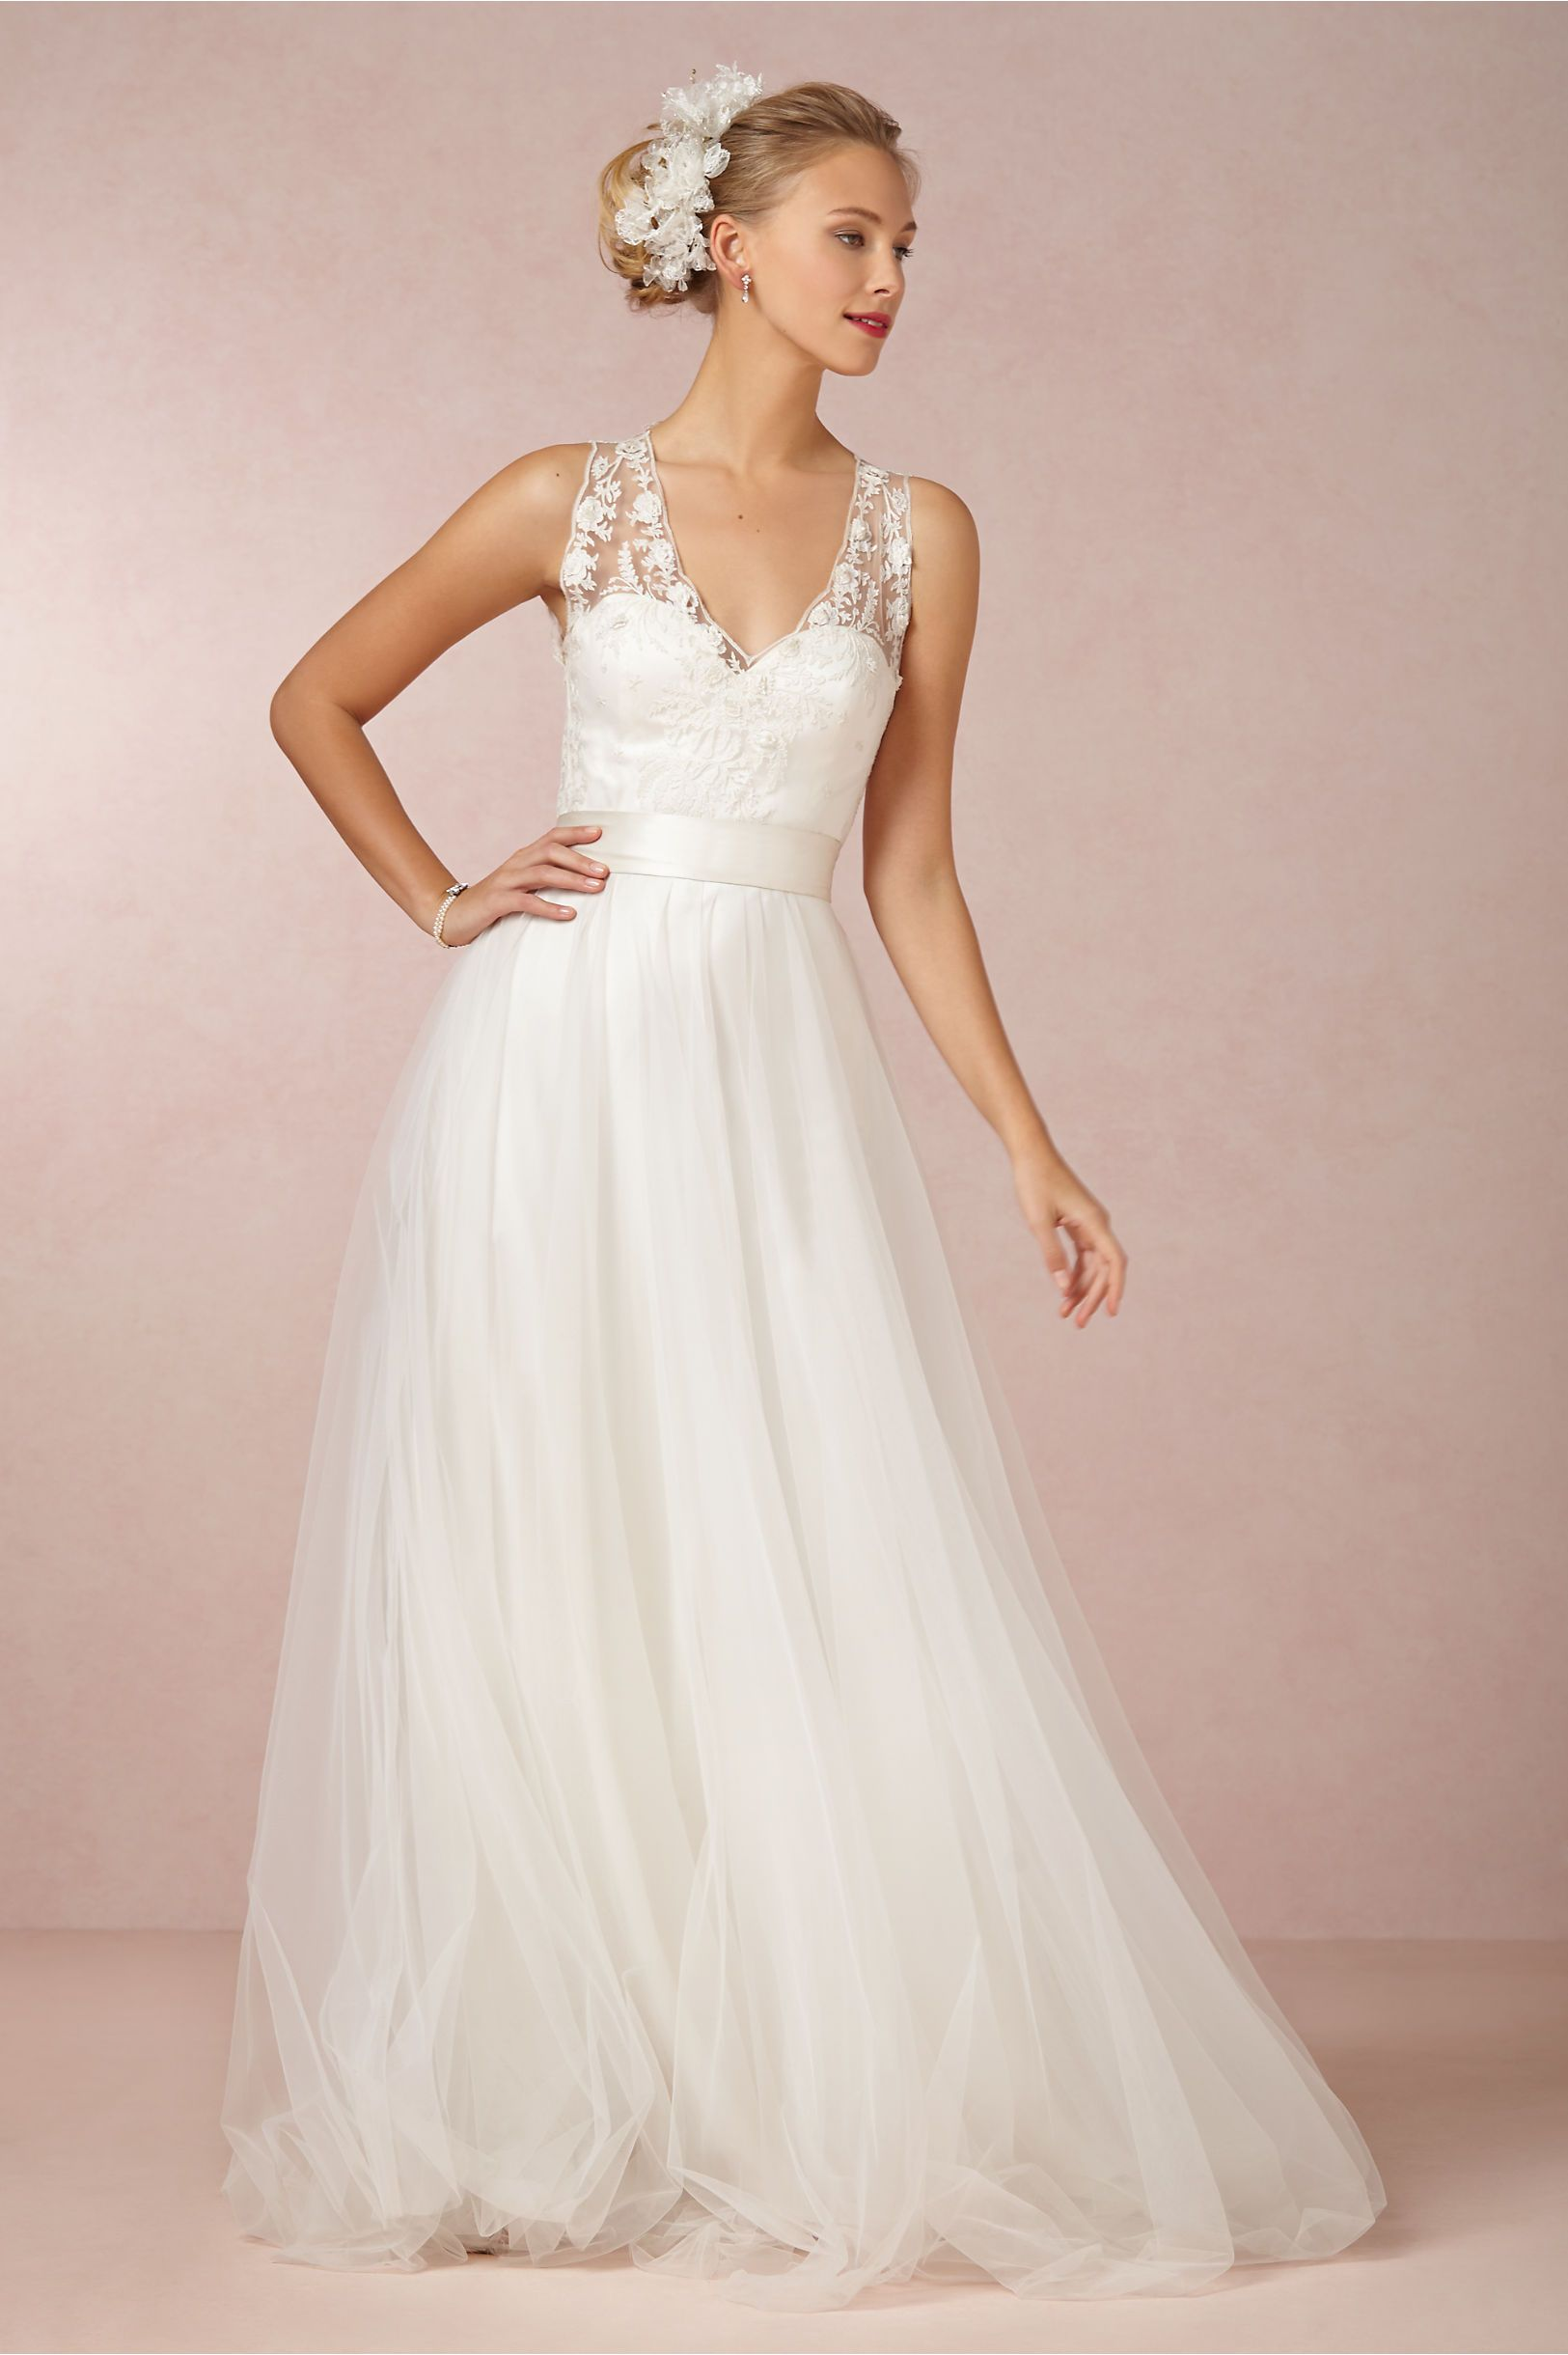 BHLDN Onyx in Ivory Catherine Deane Size 2 Wedding Dress   Nicollet     BHLDN Onyx in Ivory Catherine Deane